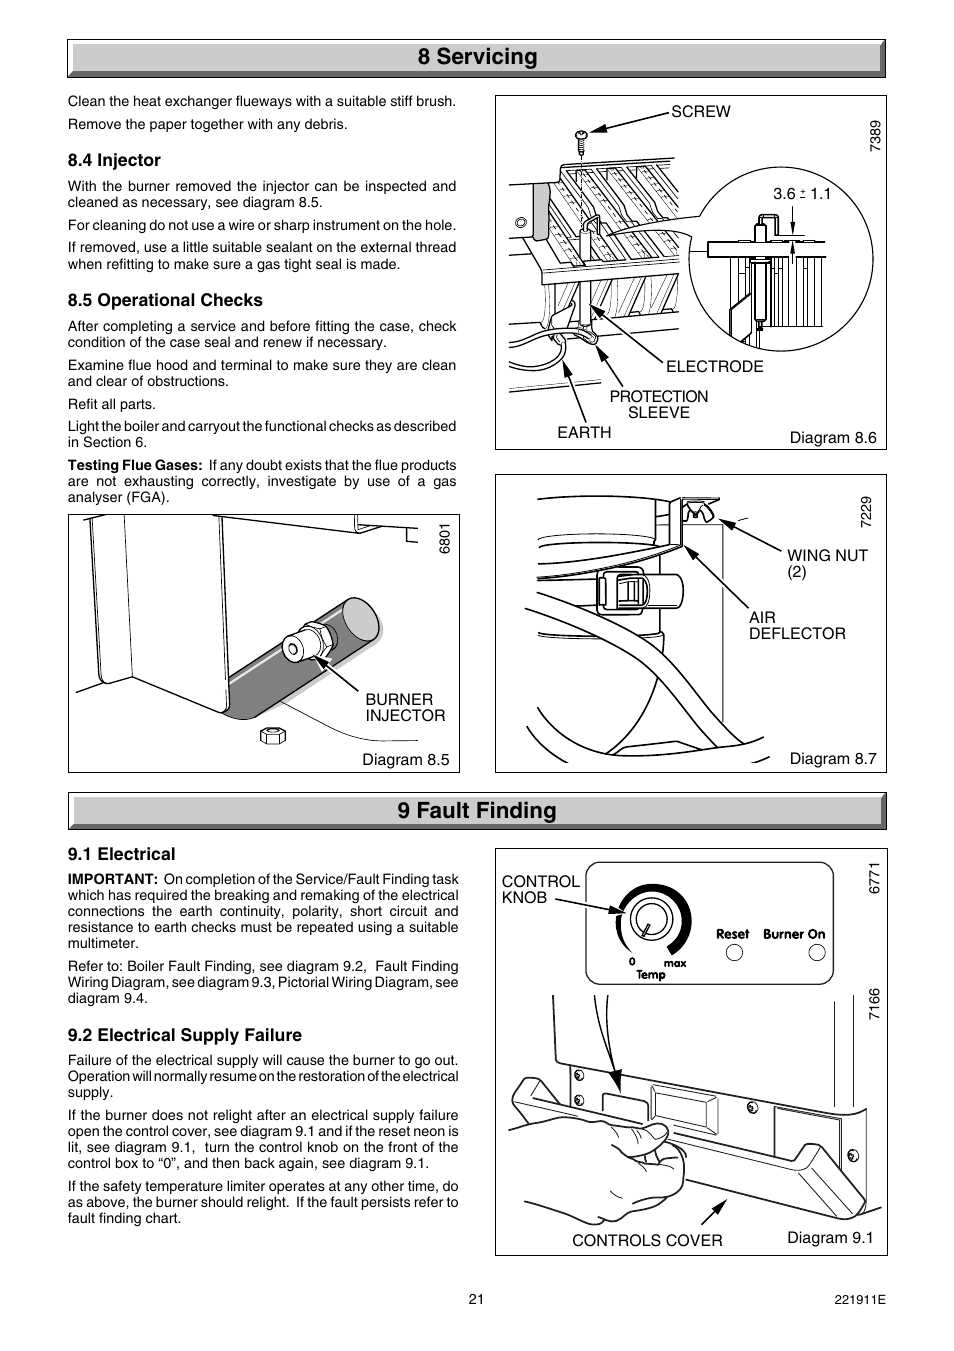 8 Servicing 9 Fault Finding Glow Worm Micron 40ff User Manual Pictorial Wiring Diagram Page 21 28